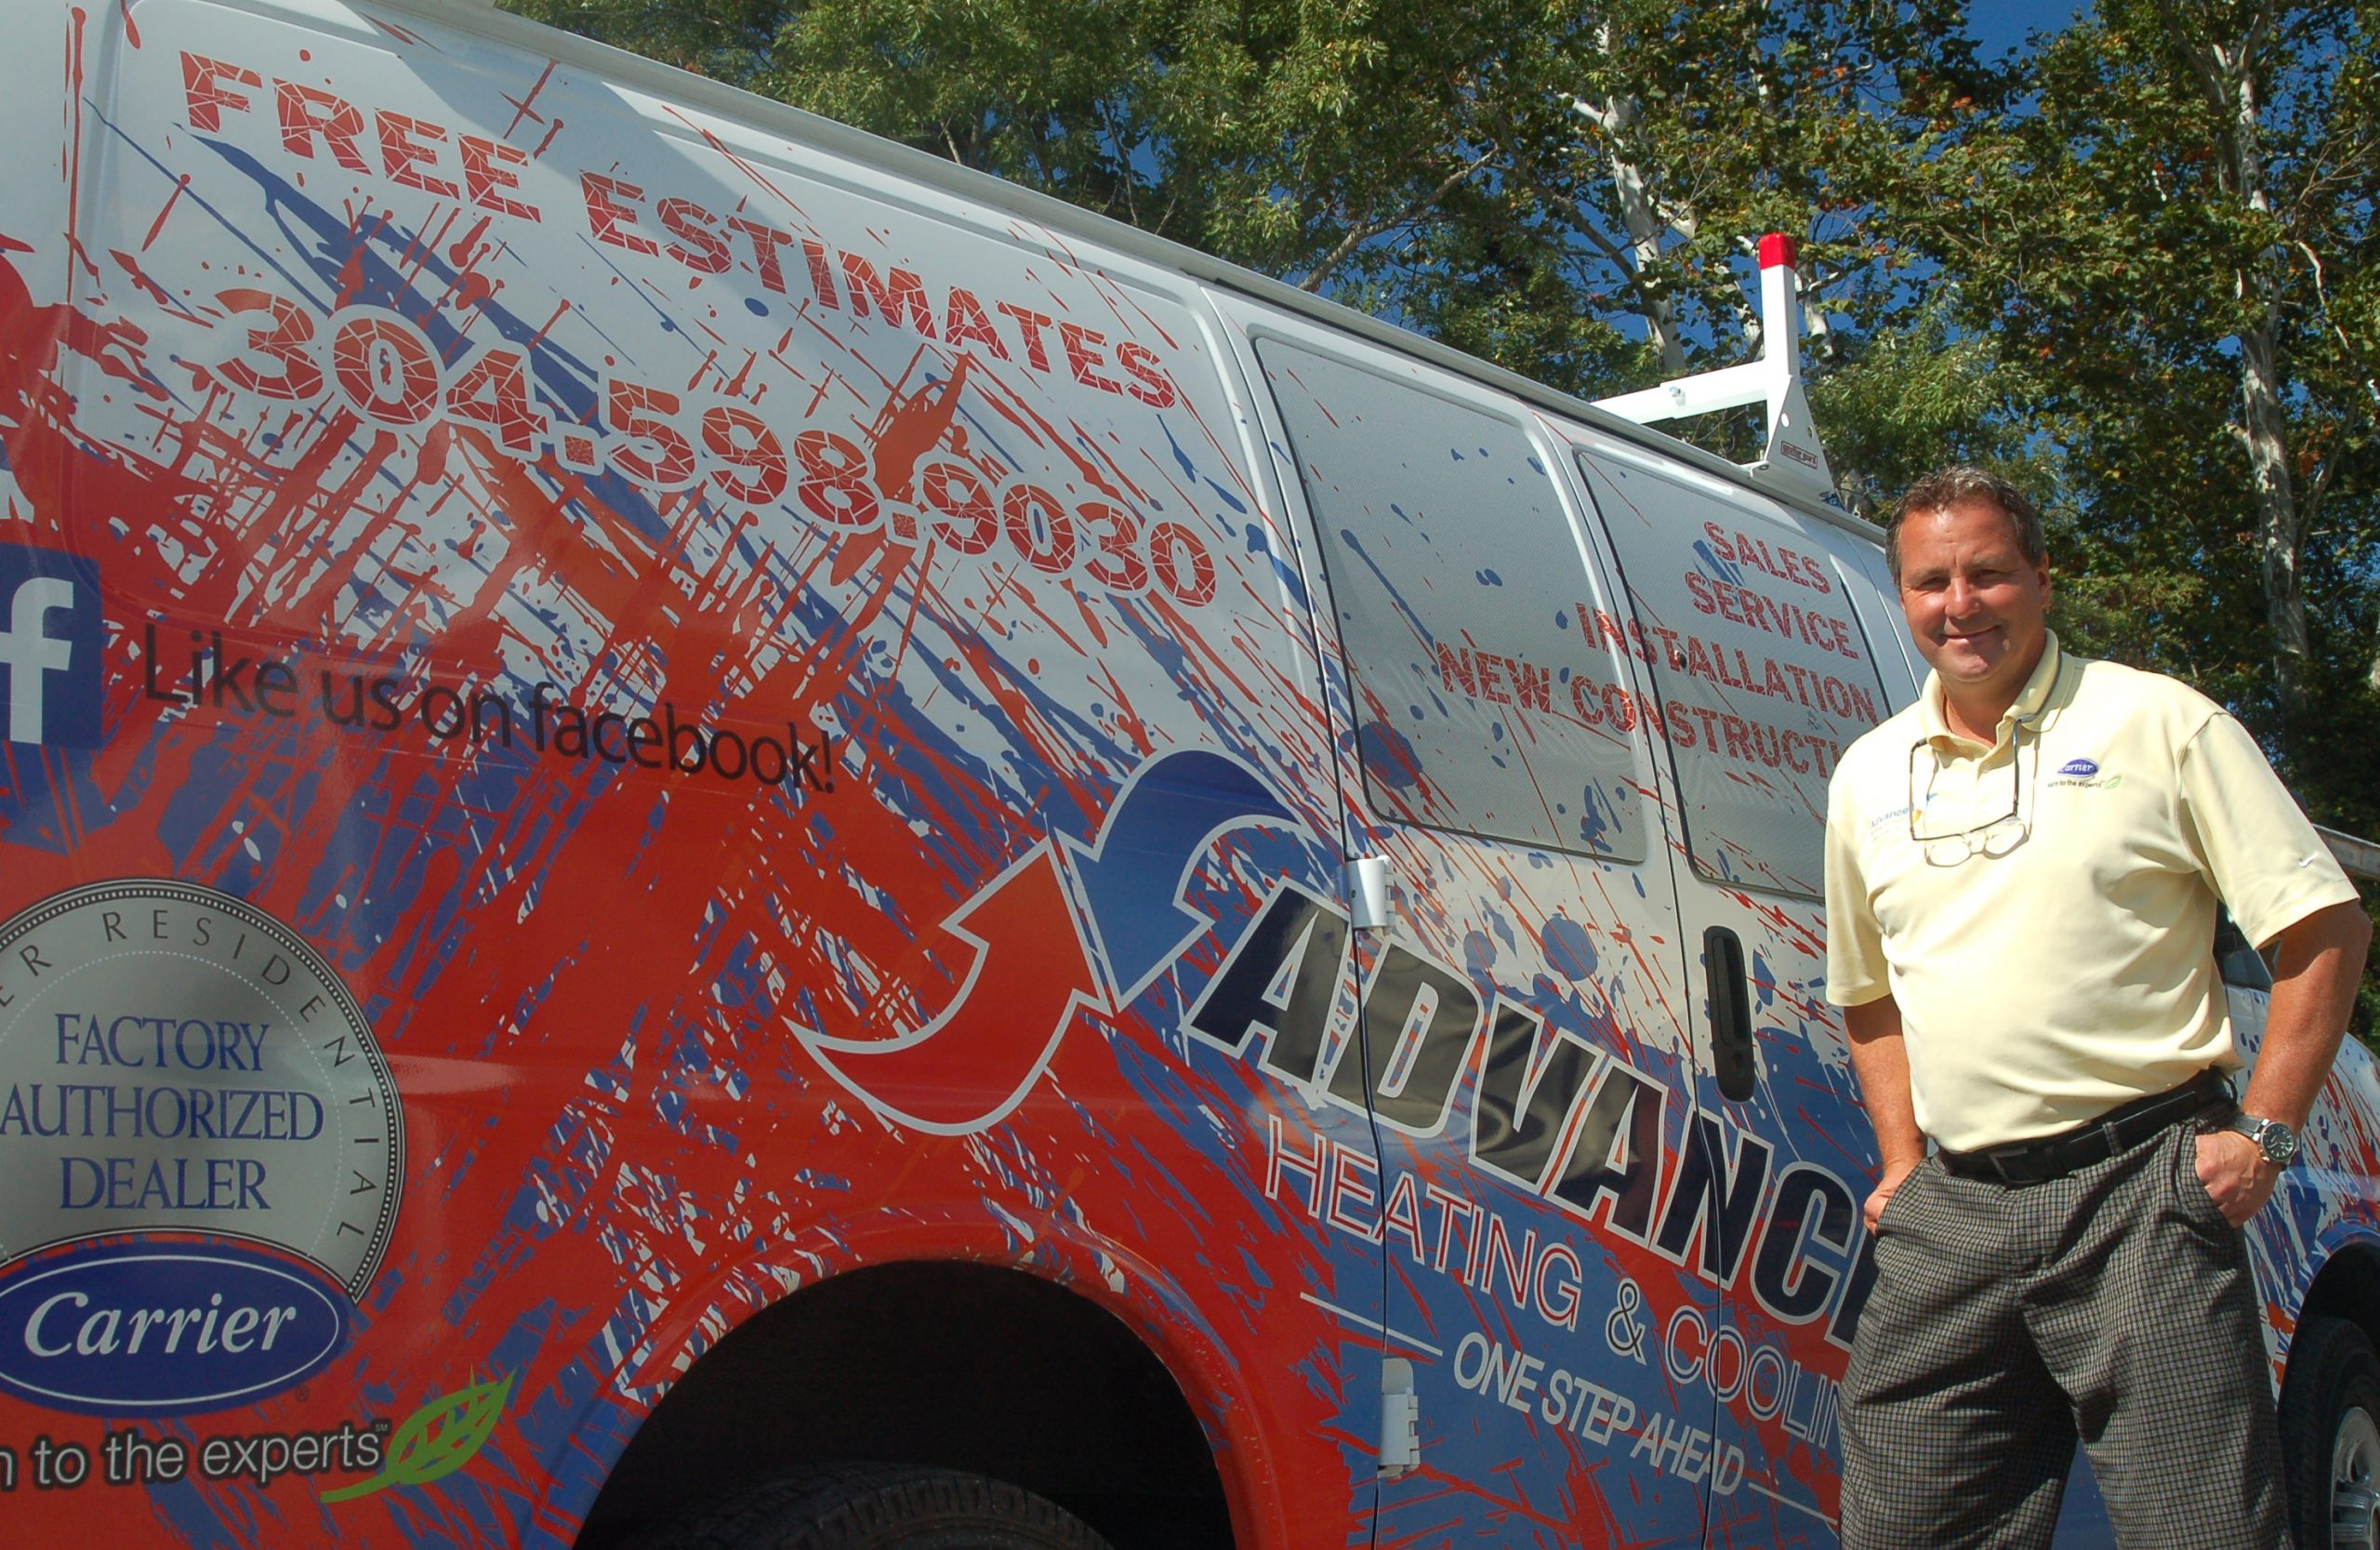 Advanced Heating & Cooling of Morgantown, WV